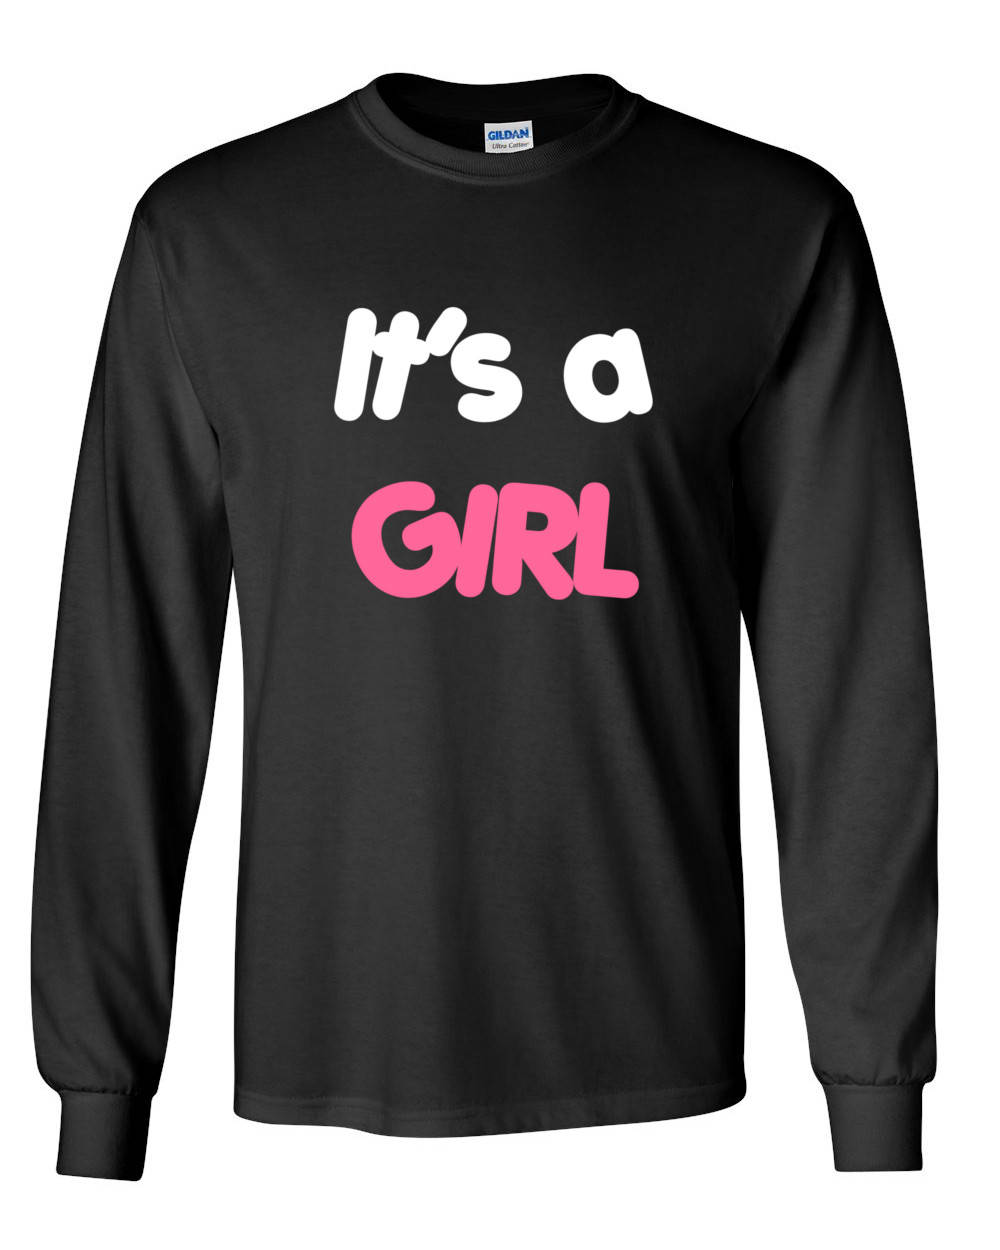 256f9e048 ... Tee - Dad To Be- Pregnancy Gift - Gender Reveal. gallery photo gallery  photo